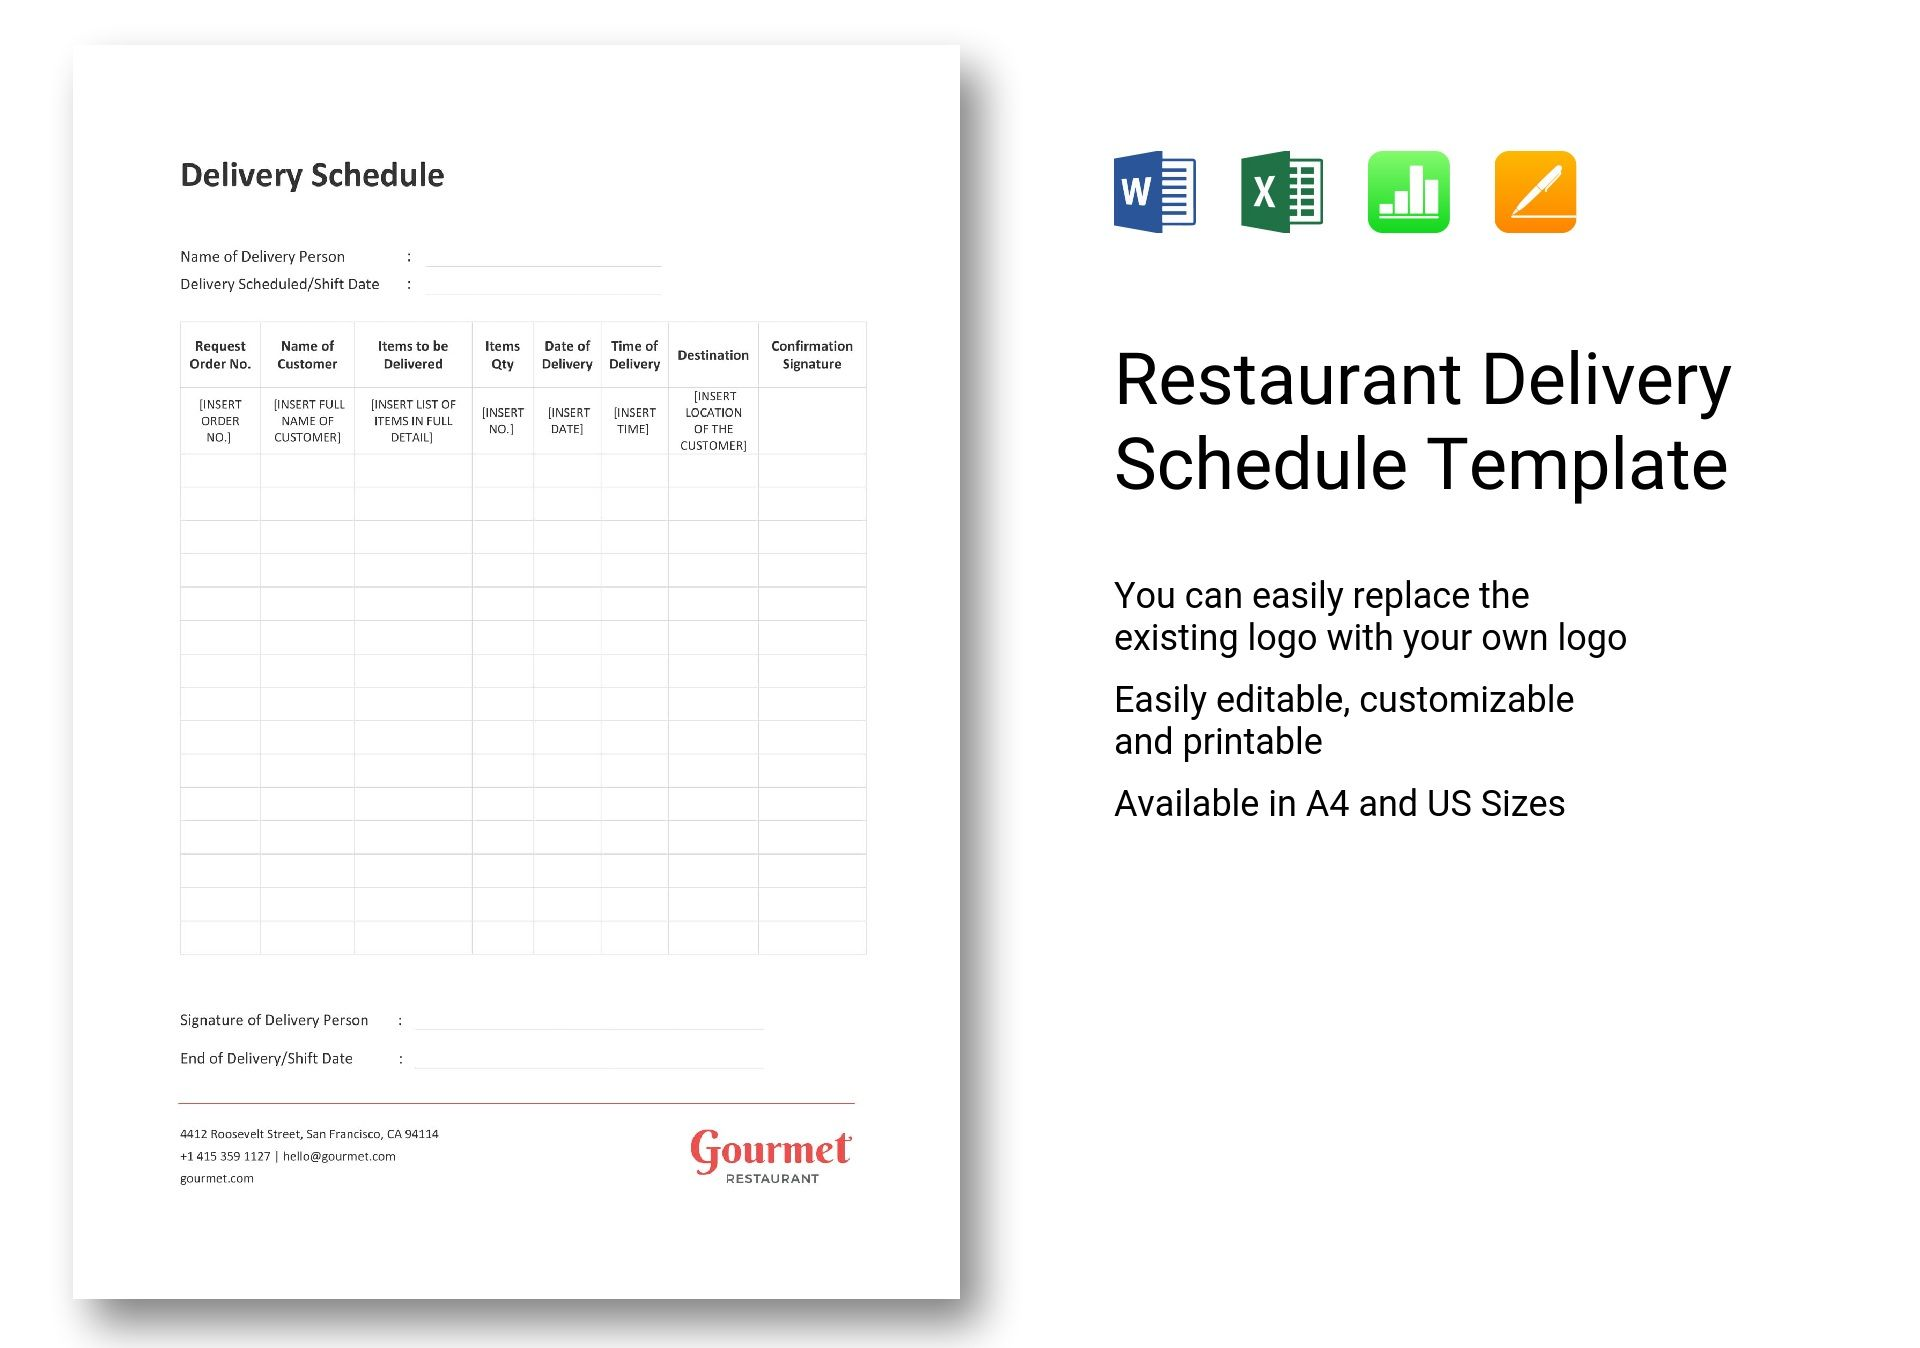 Restaurant Delivery Schedule